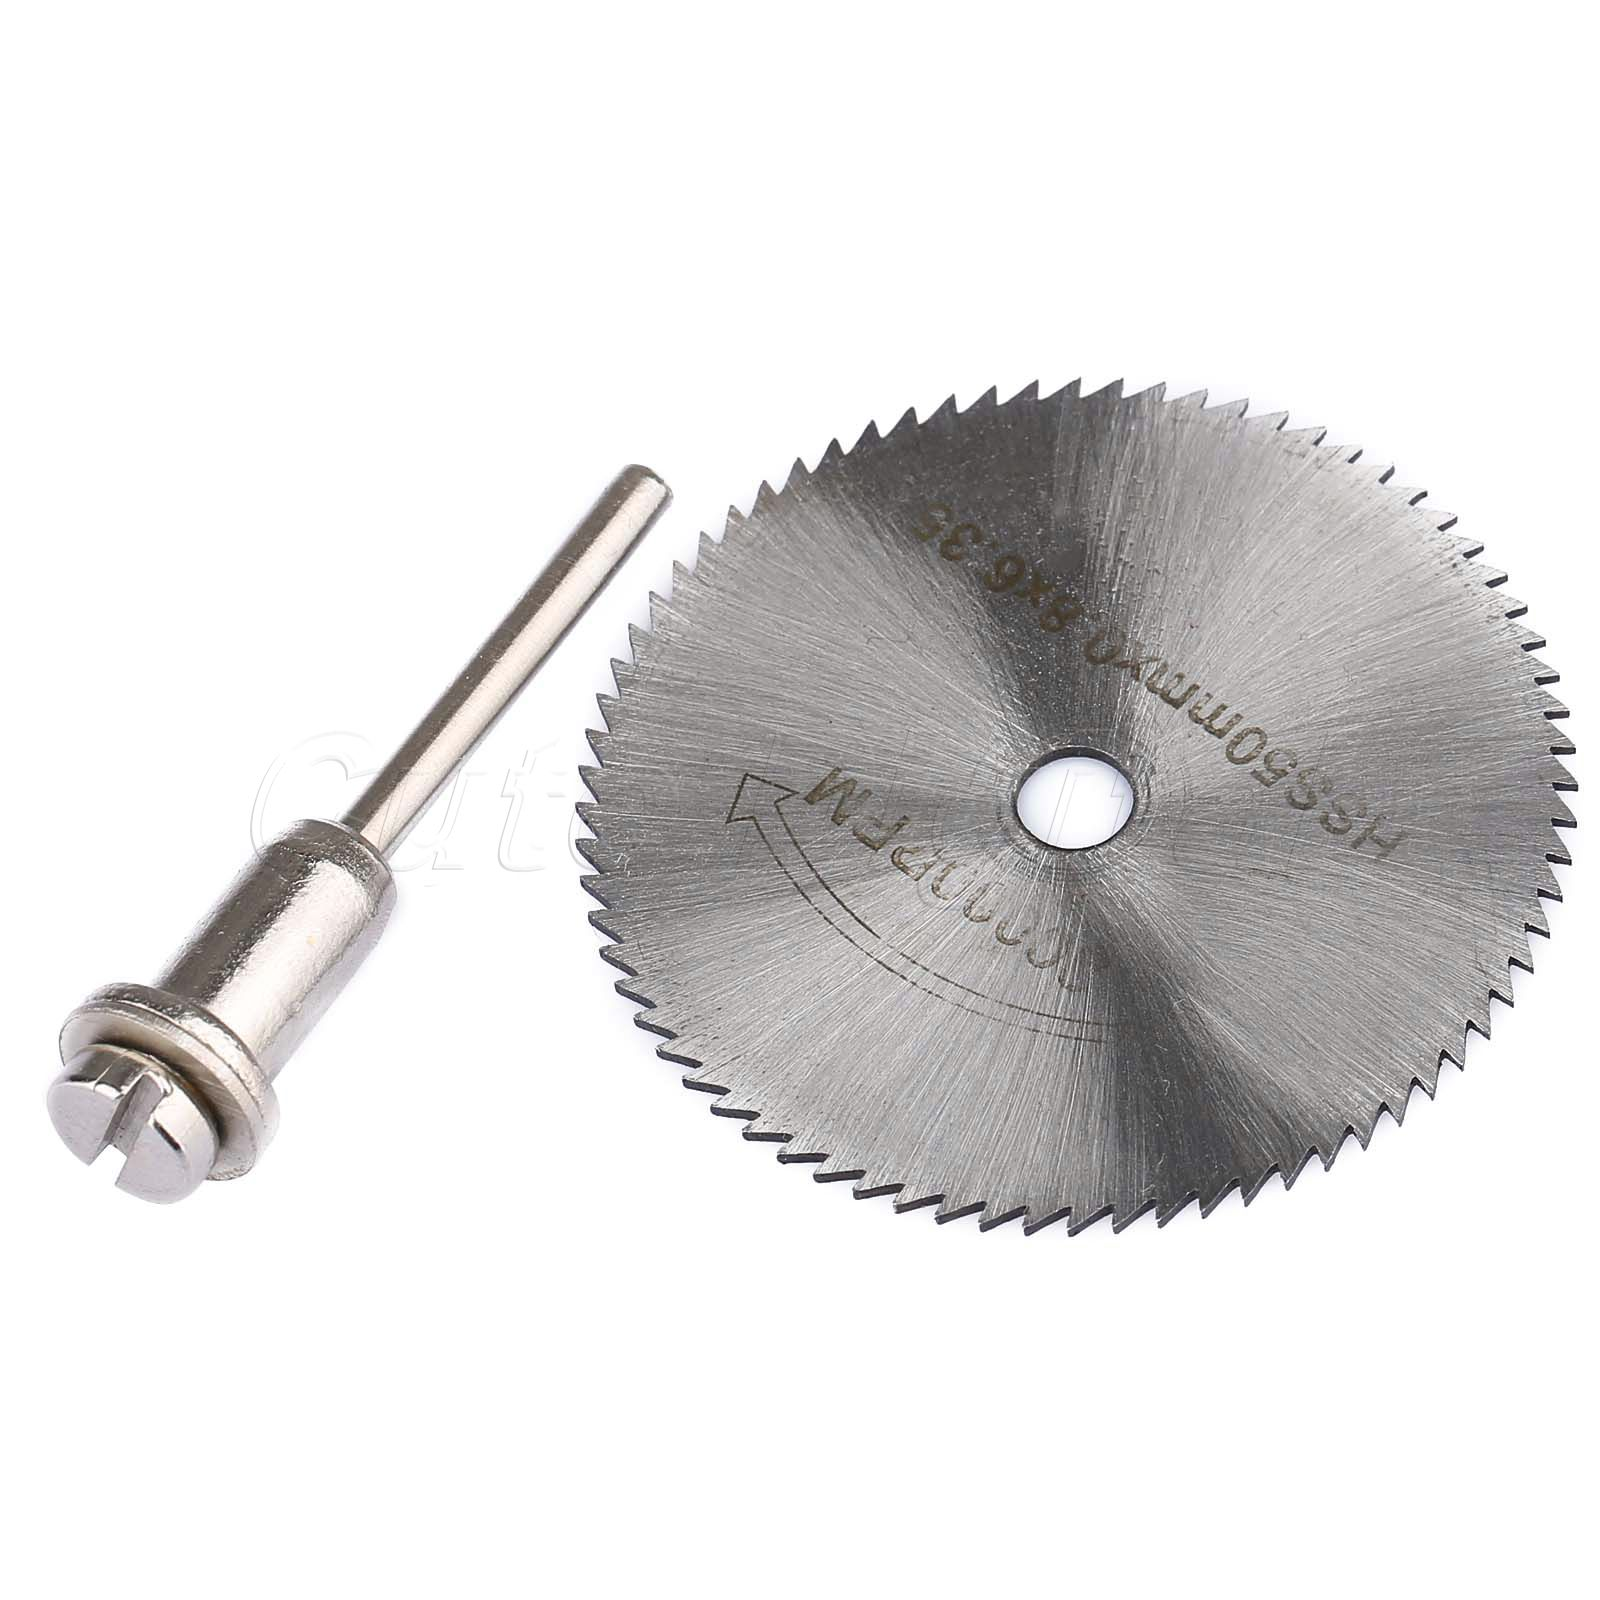 1pc HSS 50mm Steel Cutting Disc Rotary Tools Circular Saw Blade Cutter Cut Off Wheel Disc W/ Mandrel For ABS Wood Plastic Cutter